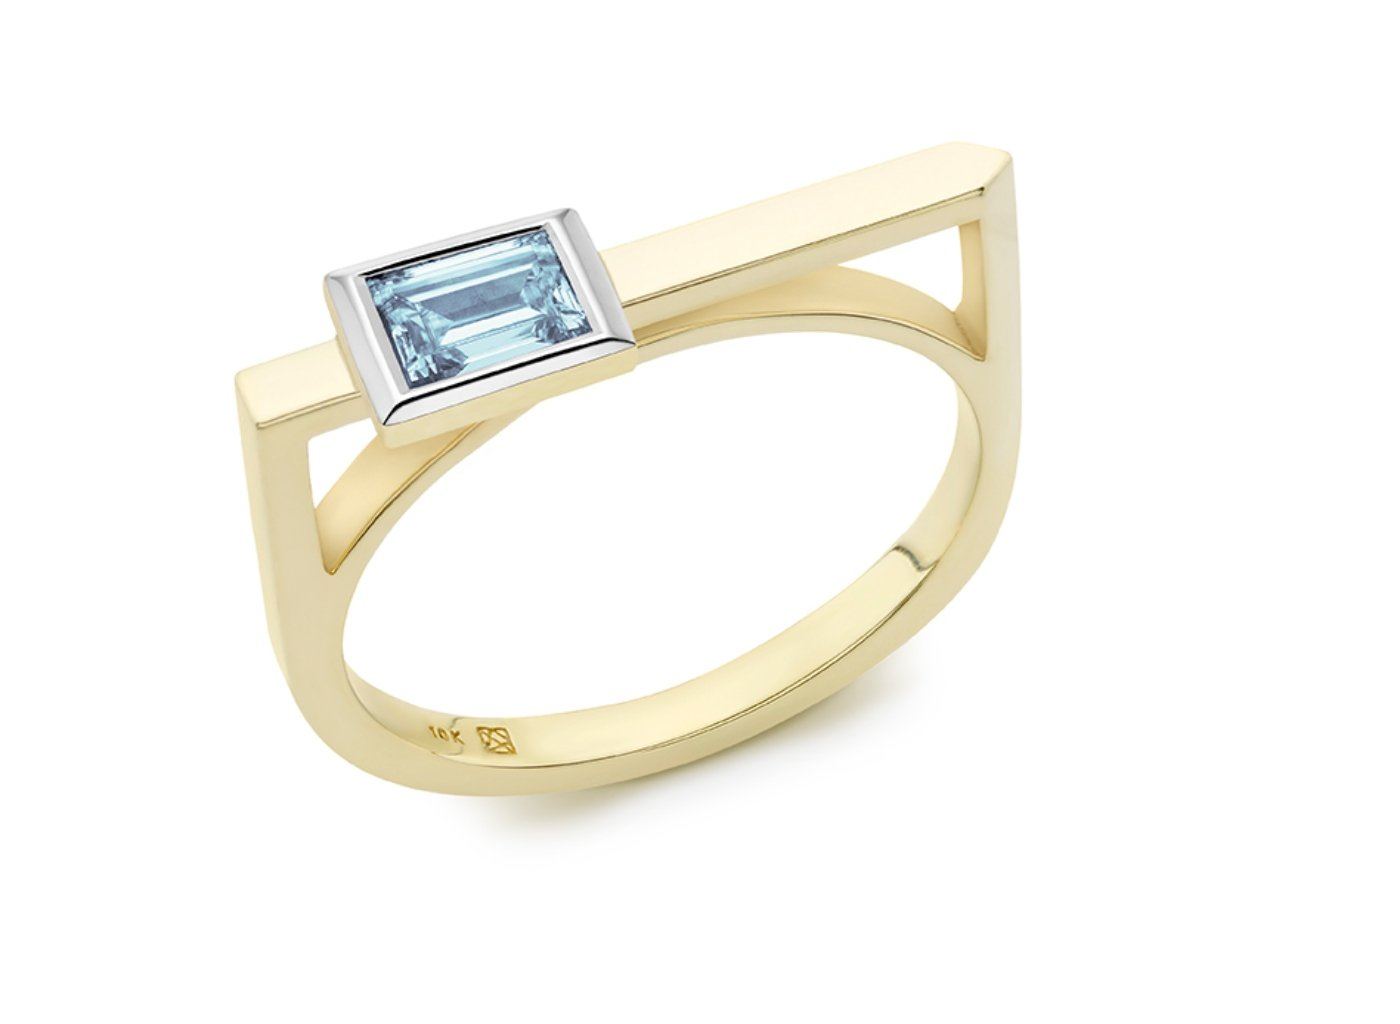 Side view of Baguette linear 3/8 carat ring with blue diamond